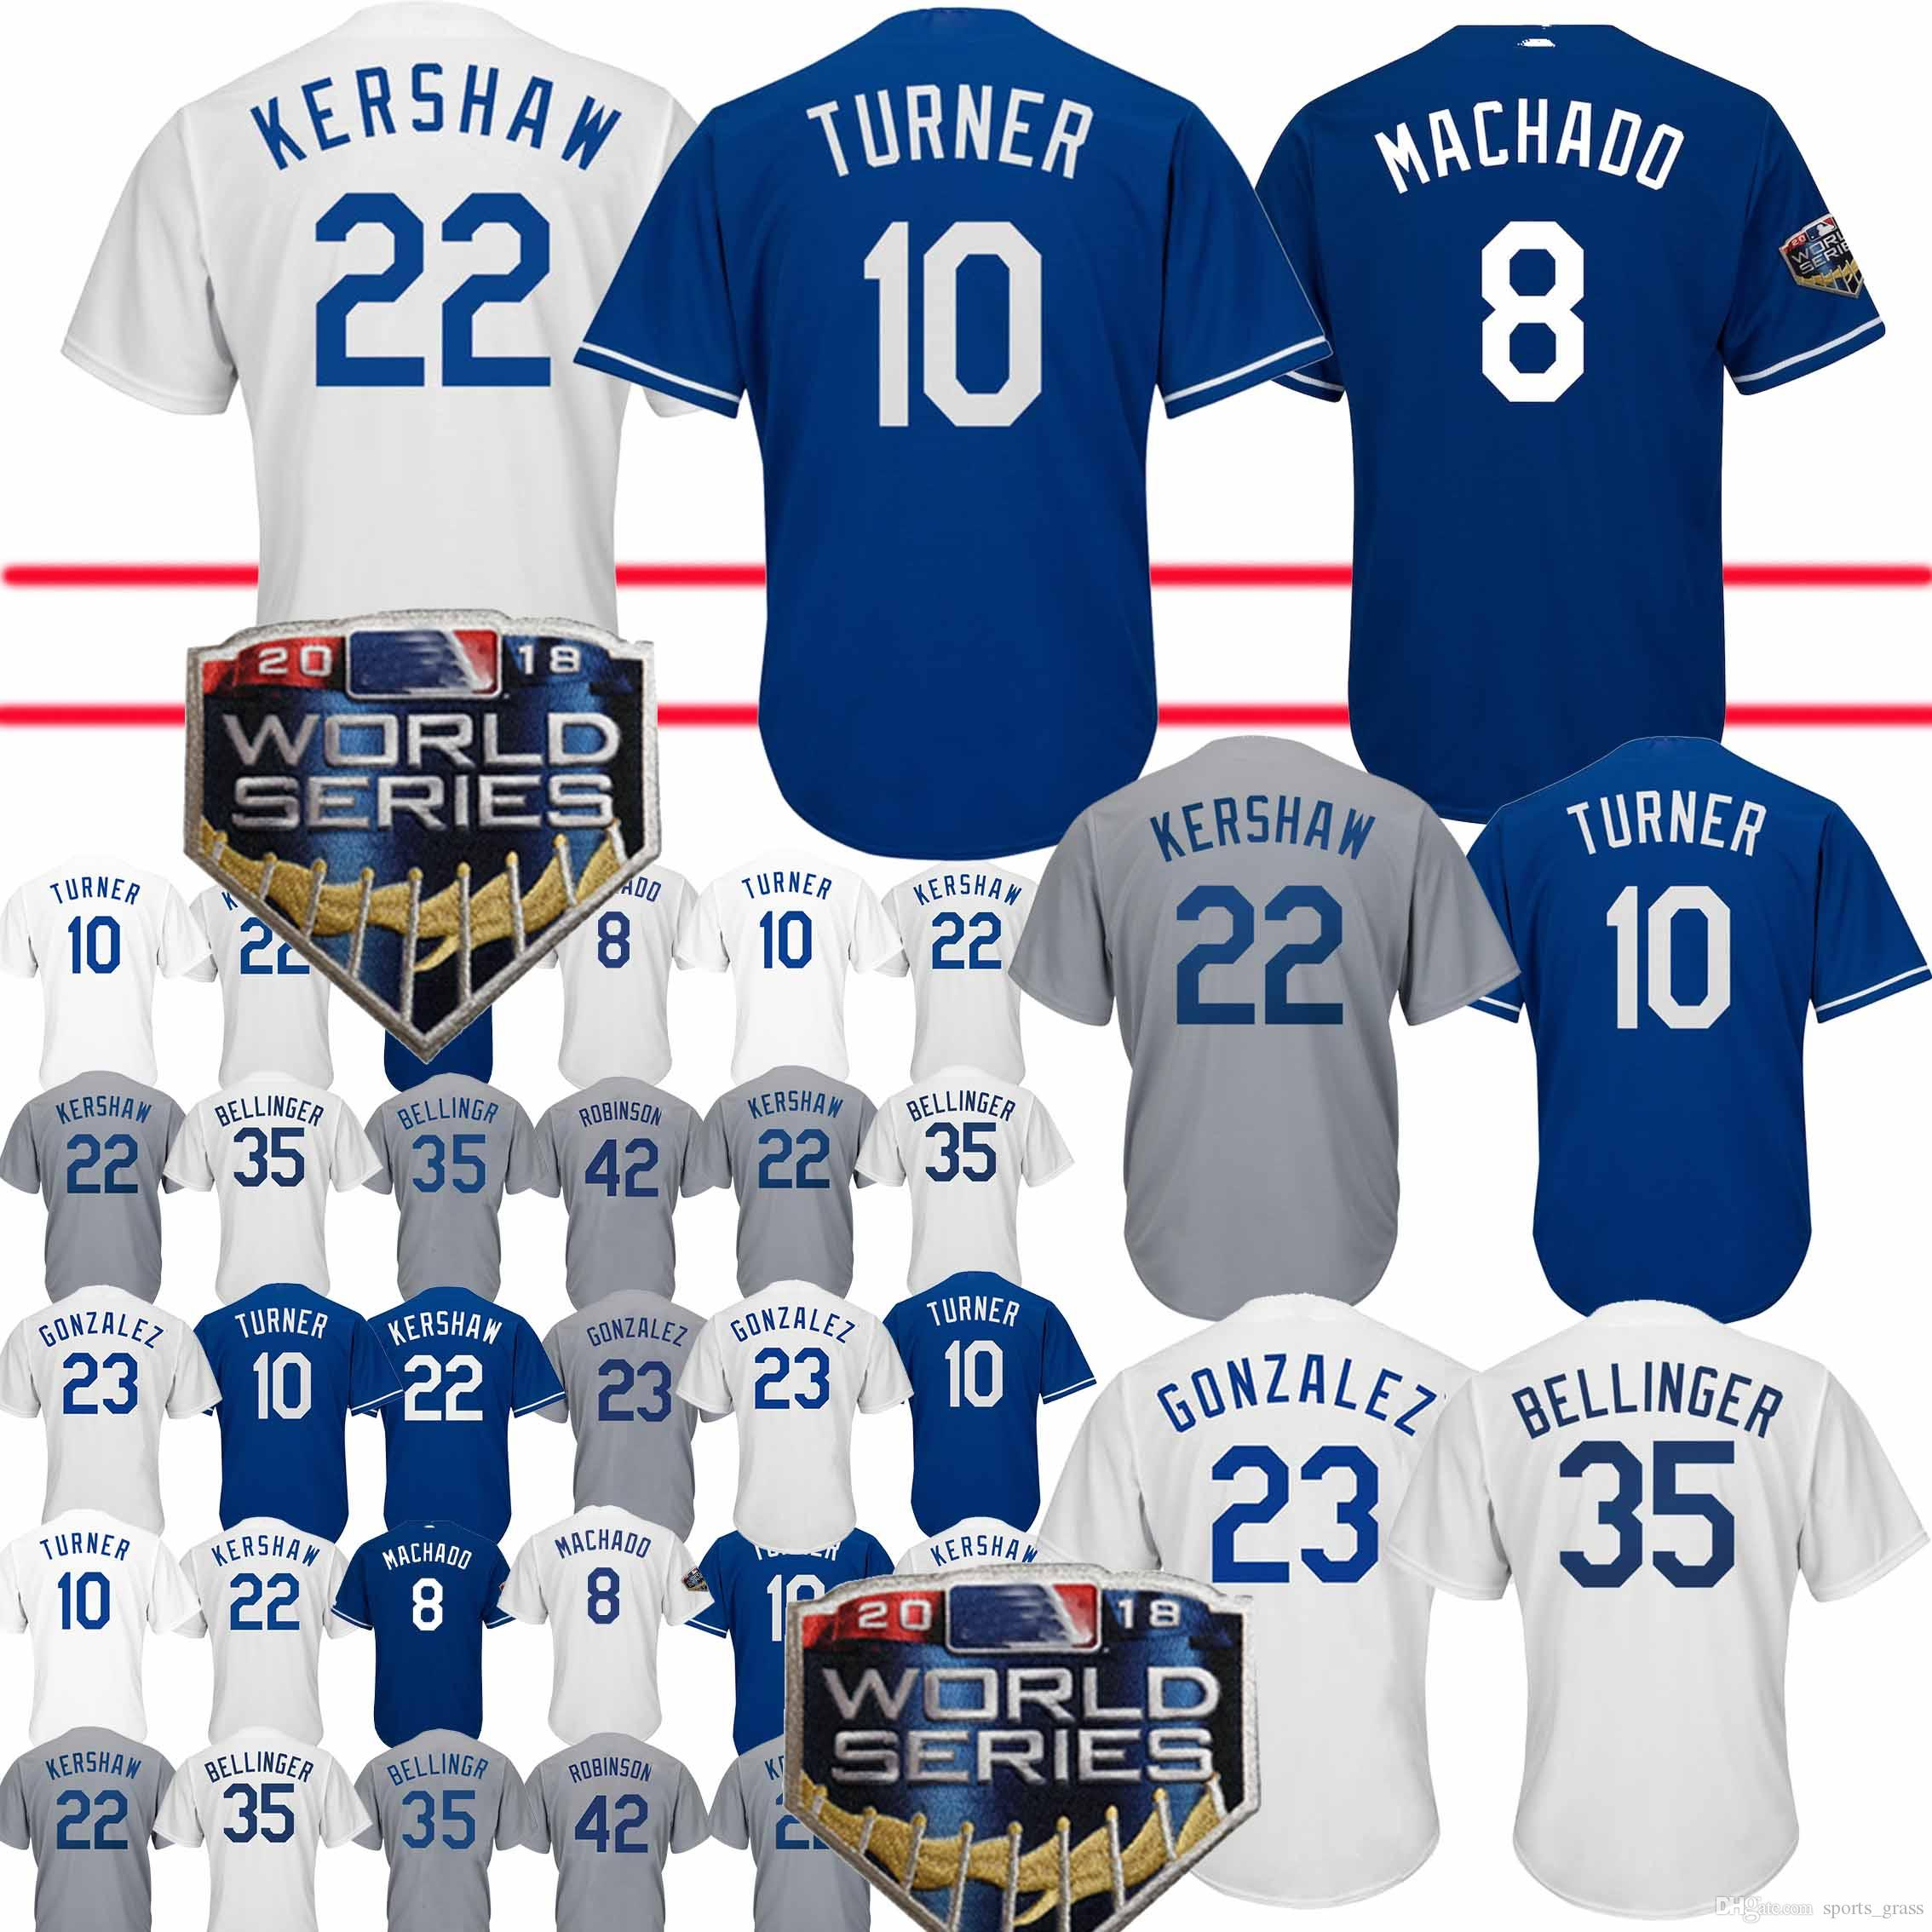 2019 8 Manny Machado Jerseys Los Angeles Dodgers 22 Clayton Kershaw 5 Corey  Seager 23 Adrian Gonzalez 10 Justin Turner Jersey Adult Shirt From  Sports grass 76a7ff794d8